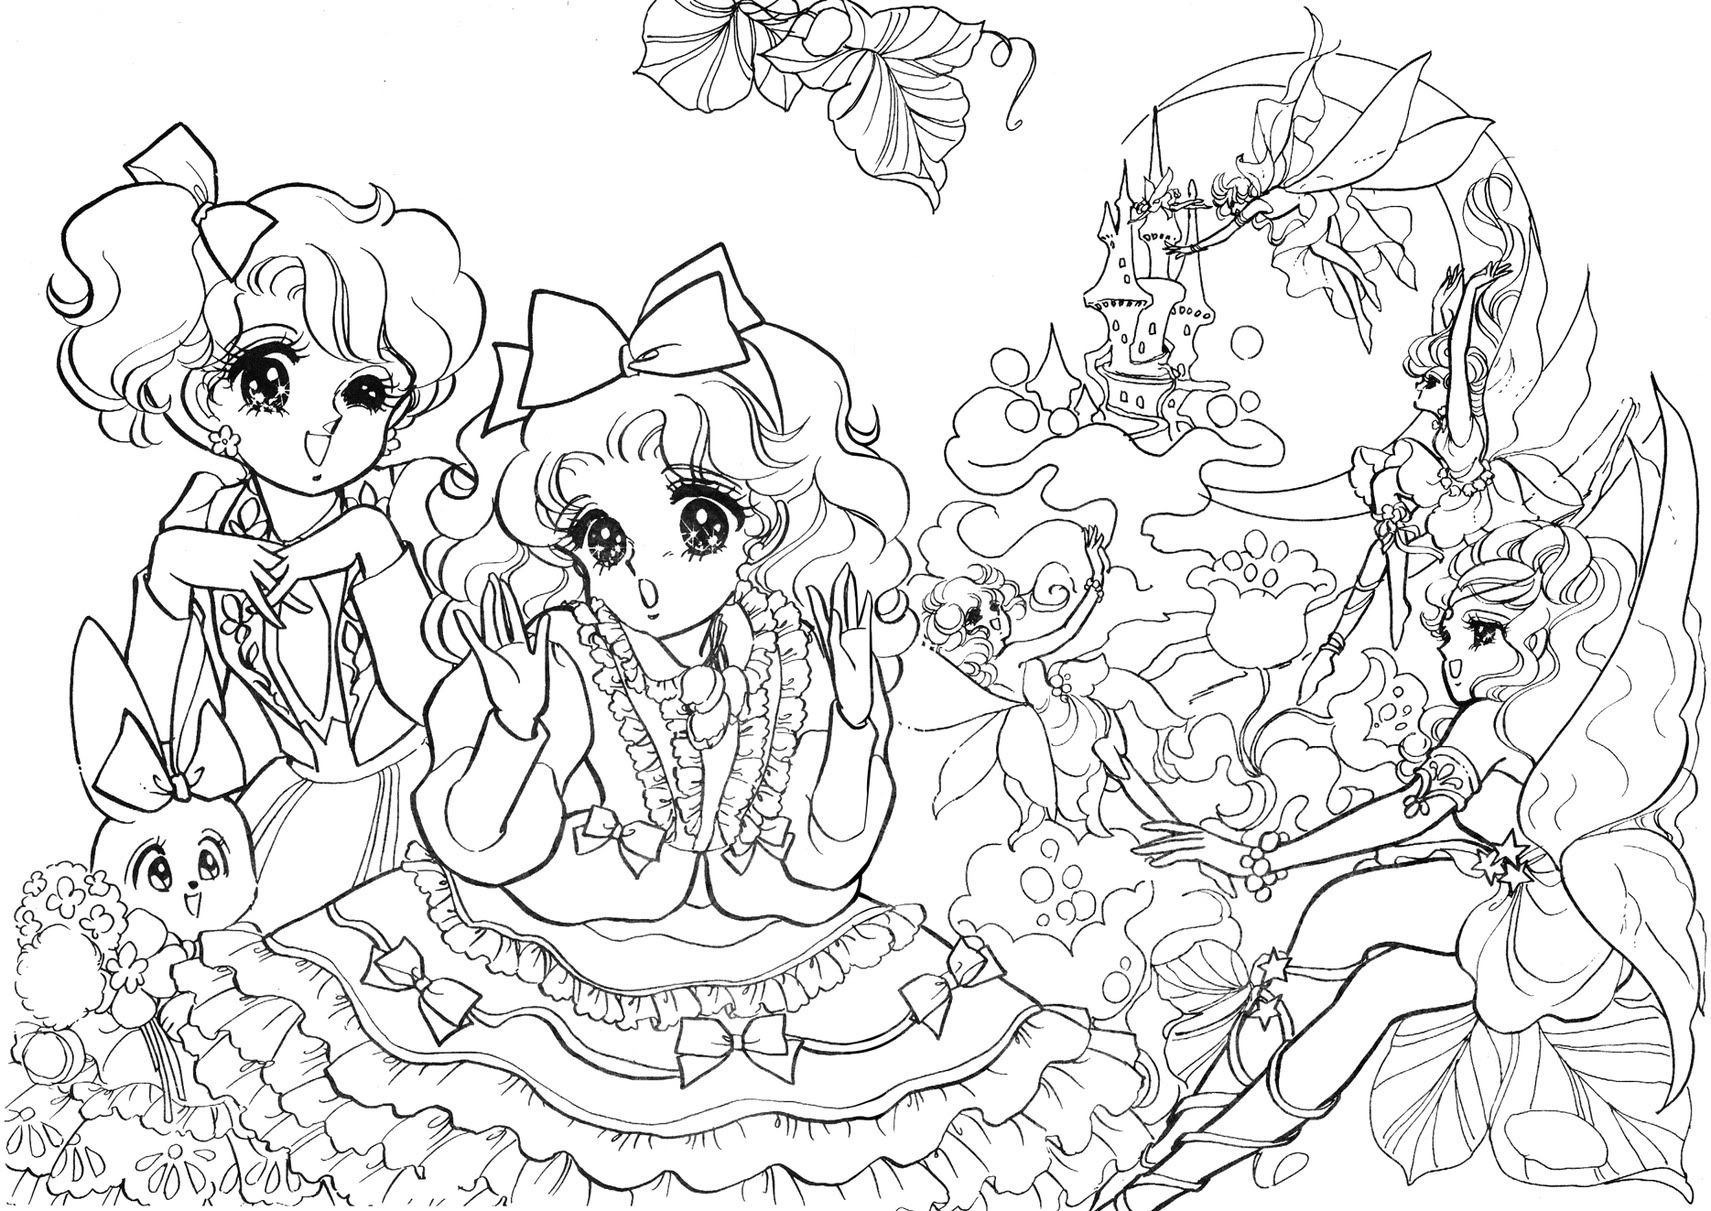 Nour Serhan uploaded this image to \'Candy Parasol Colouring book ...